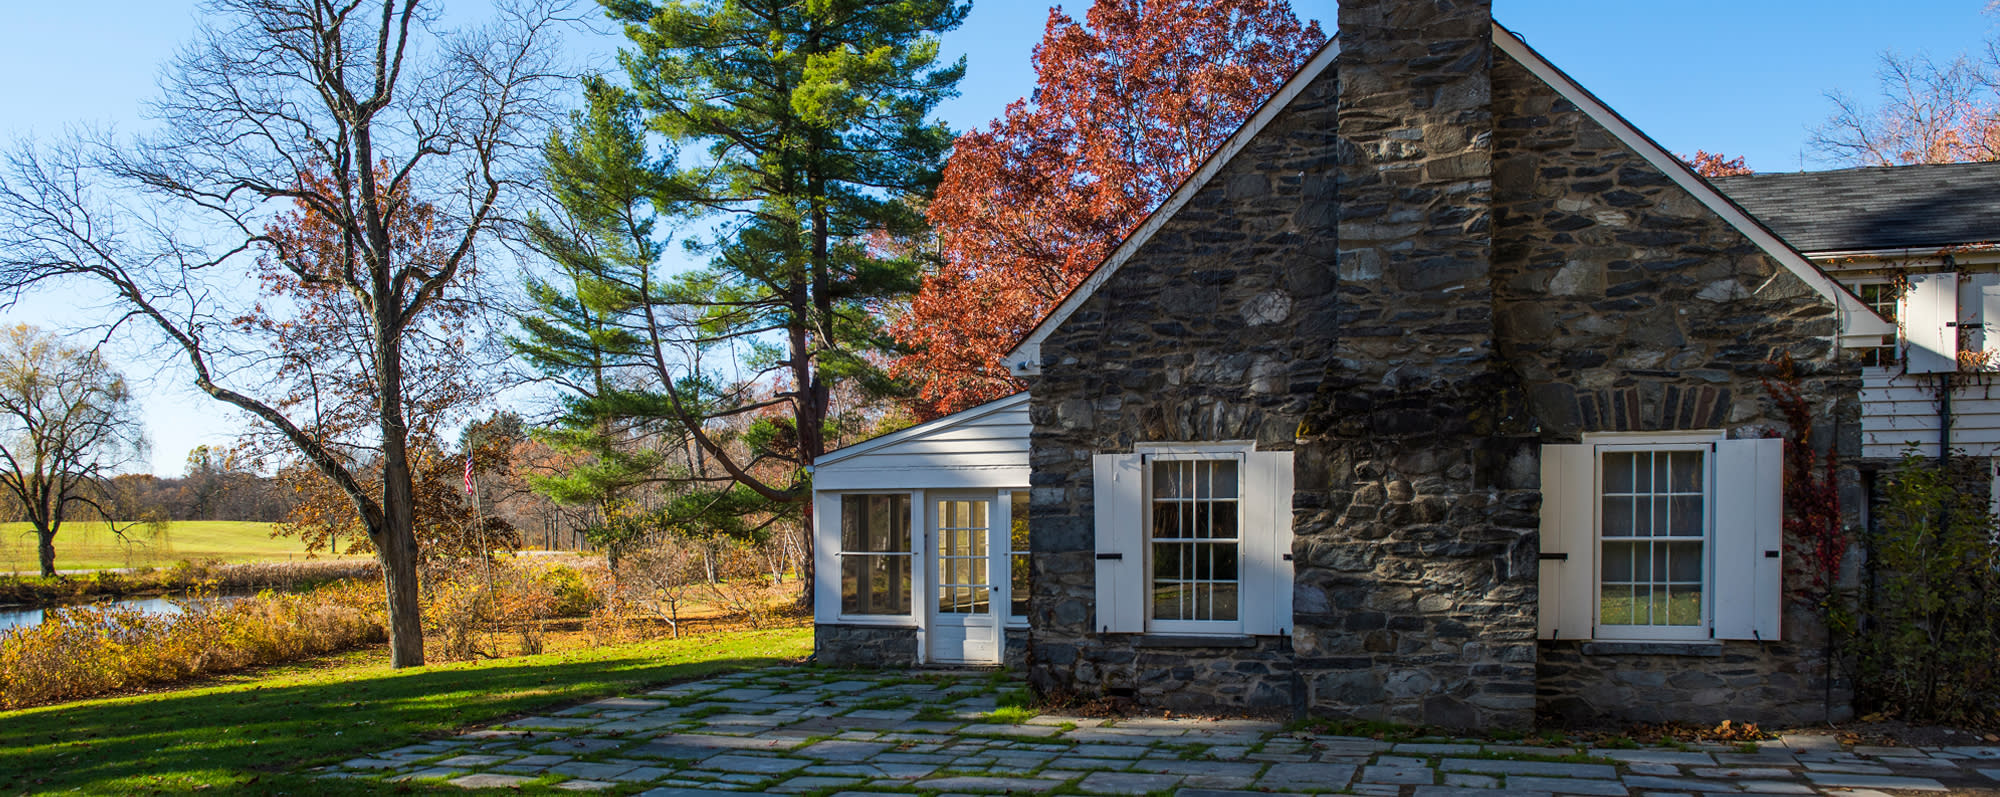 The exterior of Eleanor Roosevelt National Historic Site on a fall day